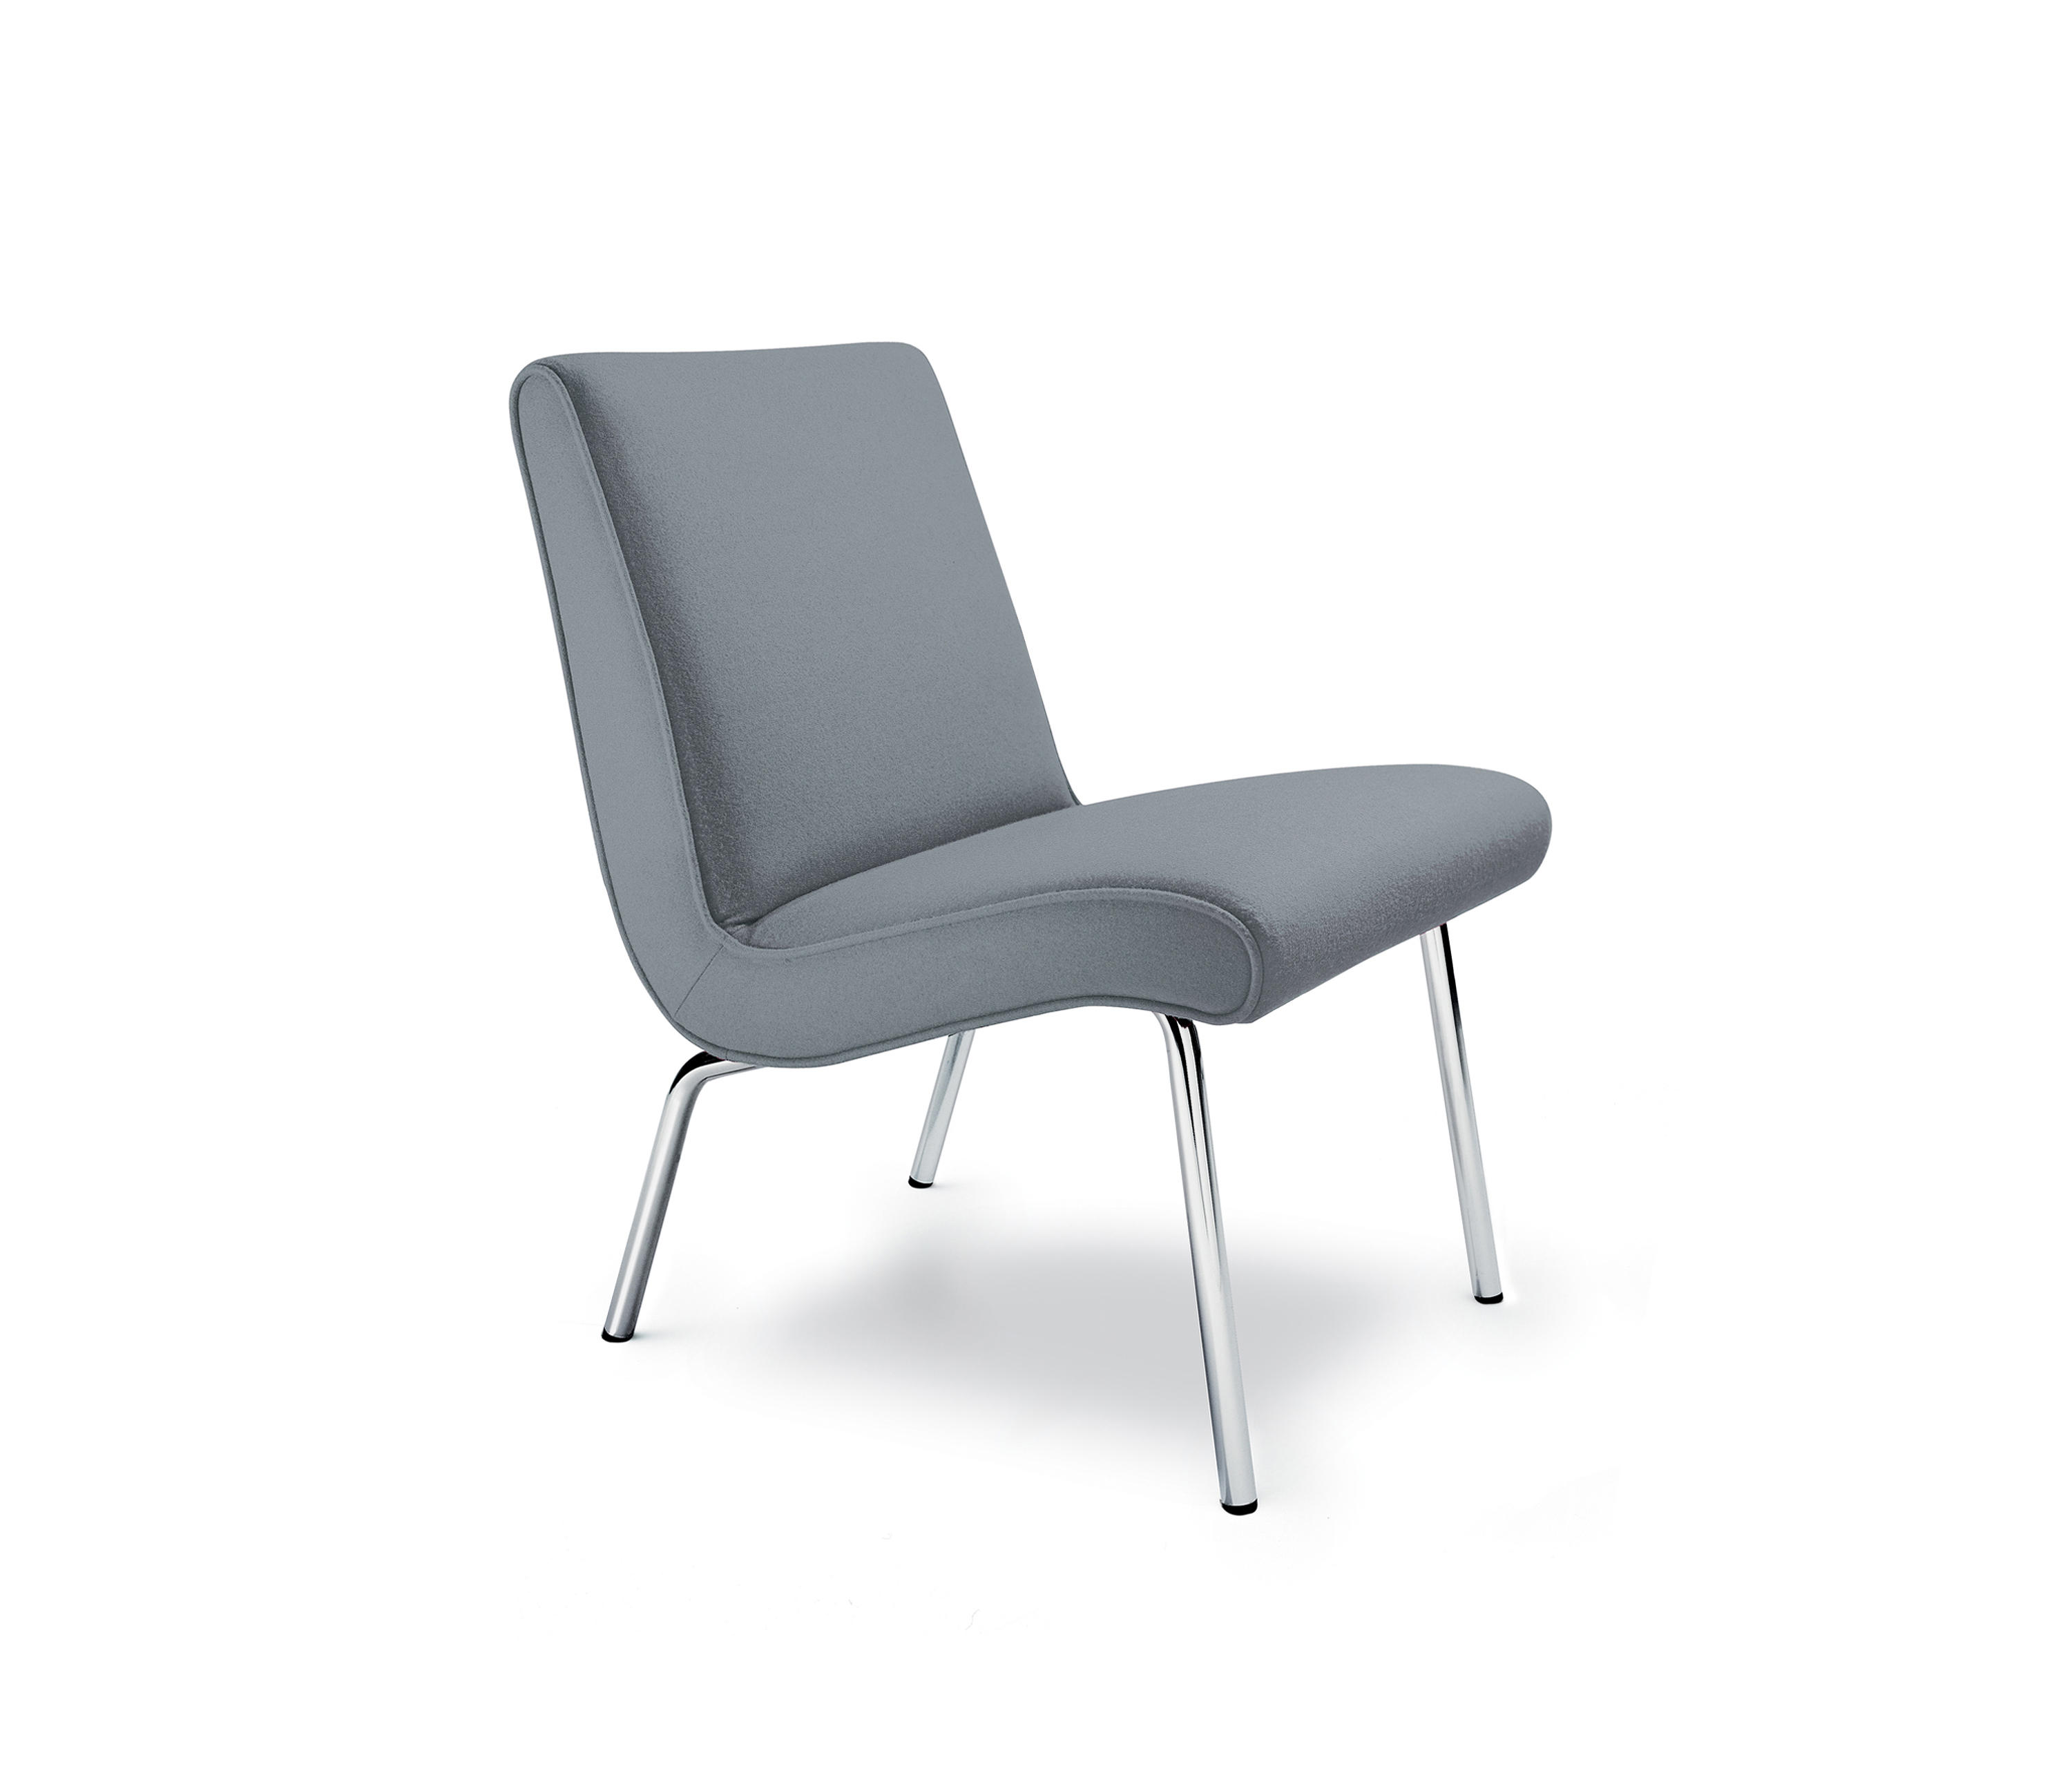 Walter Knoll Design Fauteuil.Vostra Armchair Designer Furniture Architonic